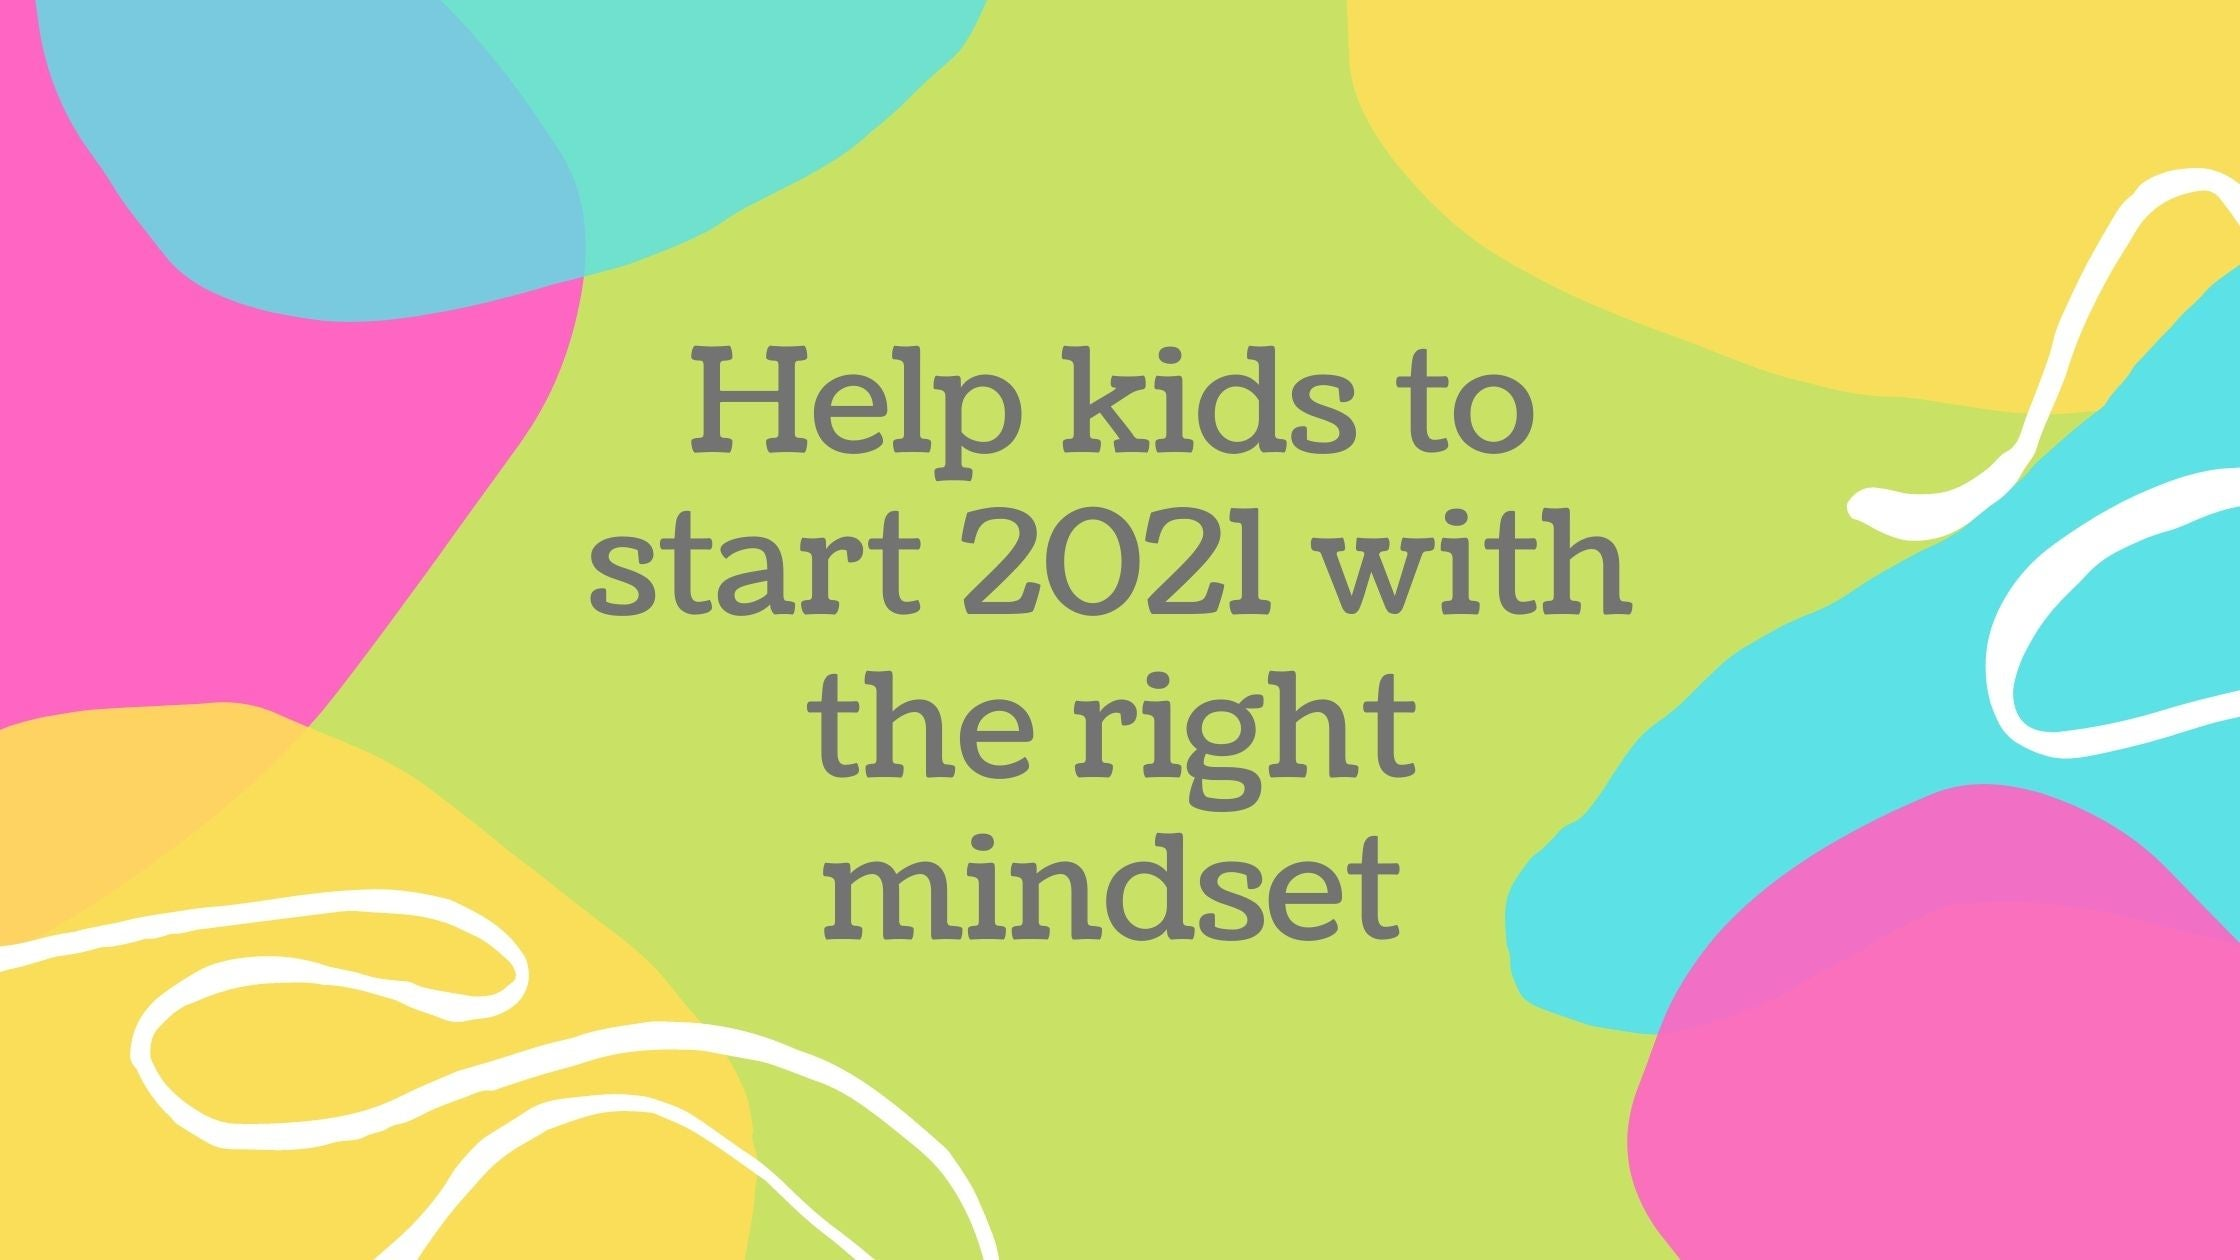 Help kids start 2021 with the right mindset